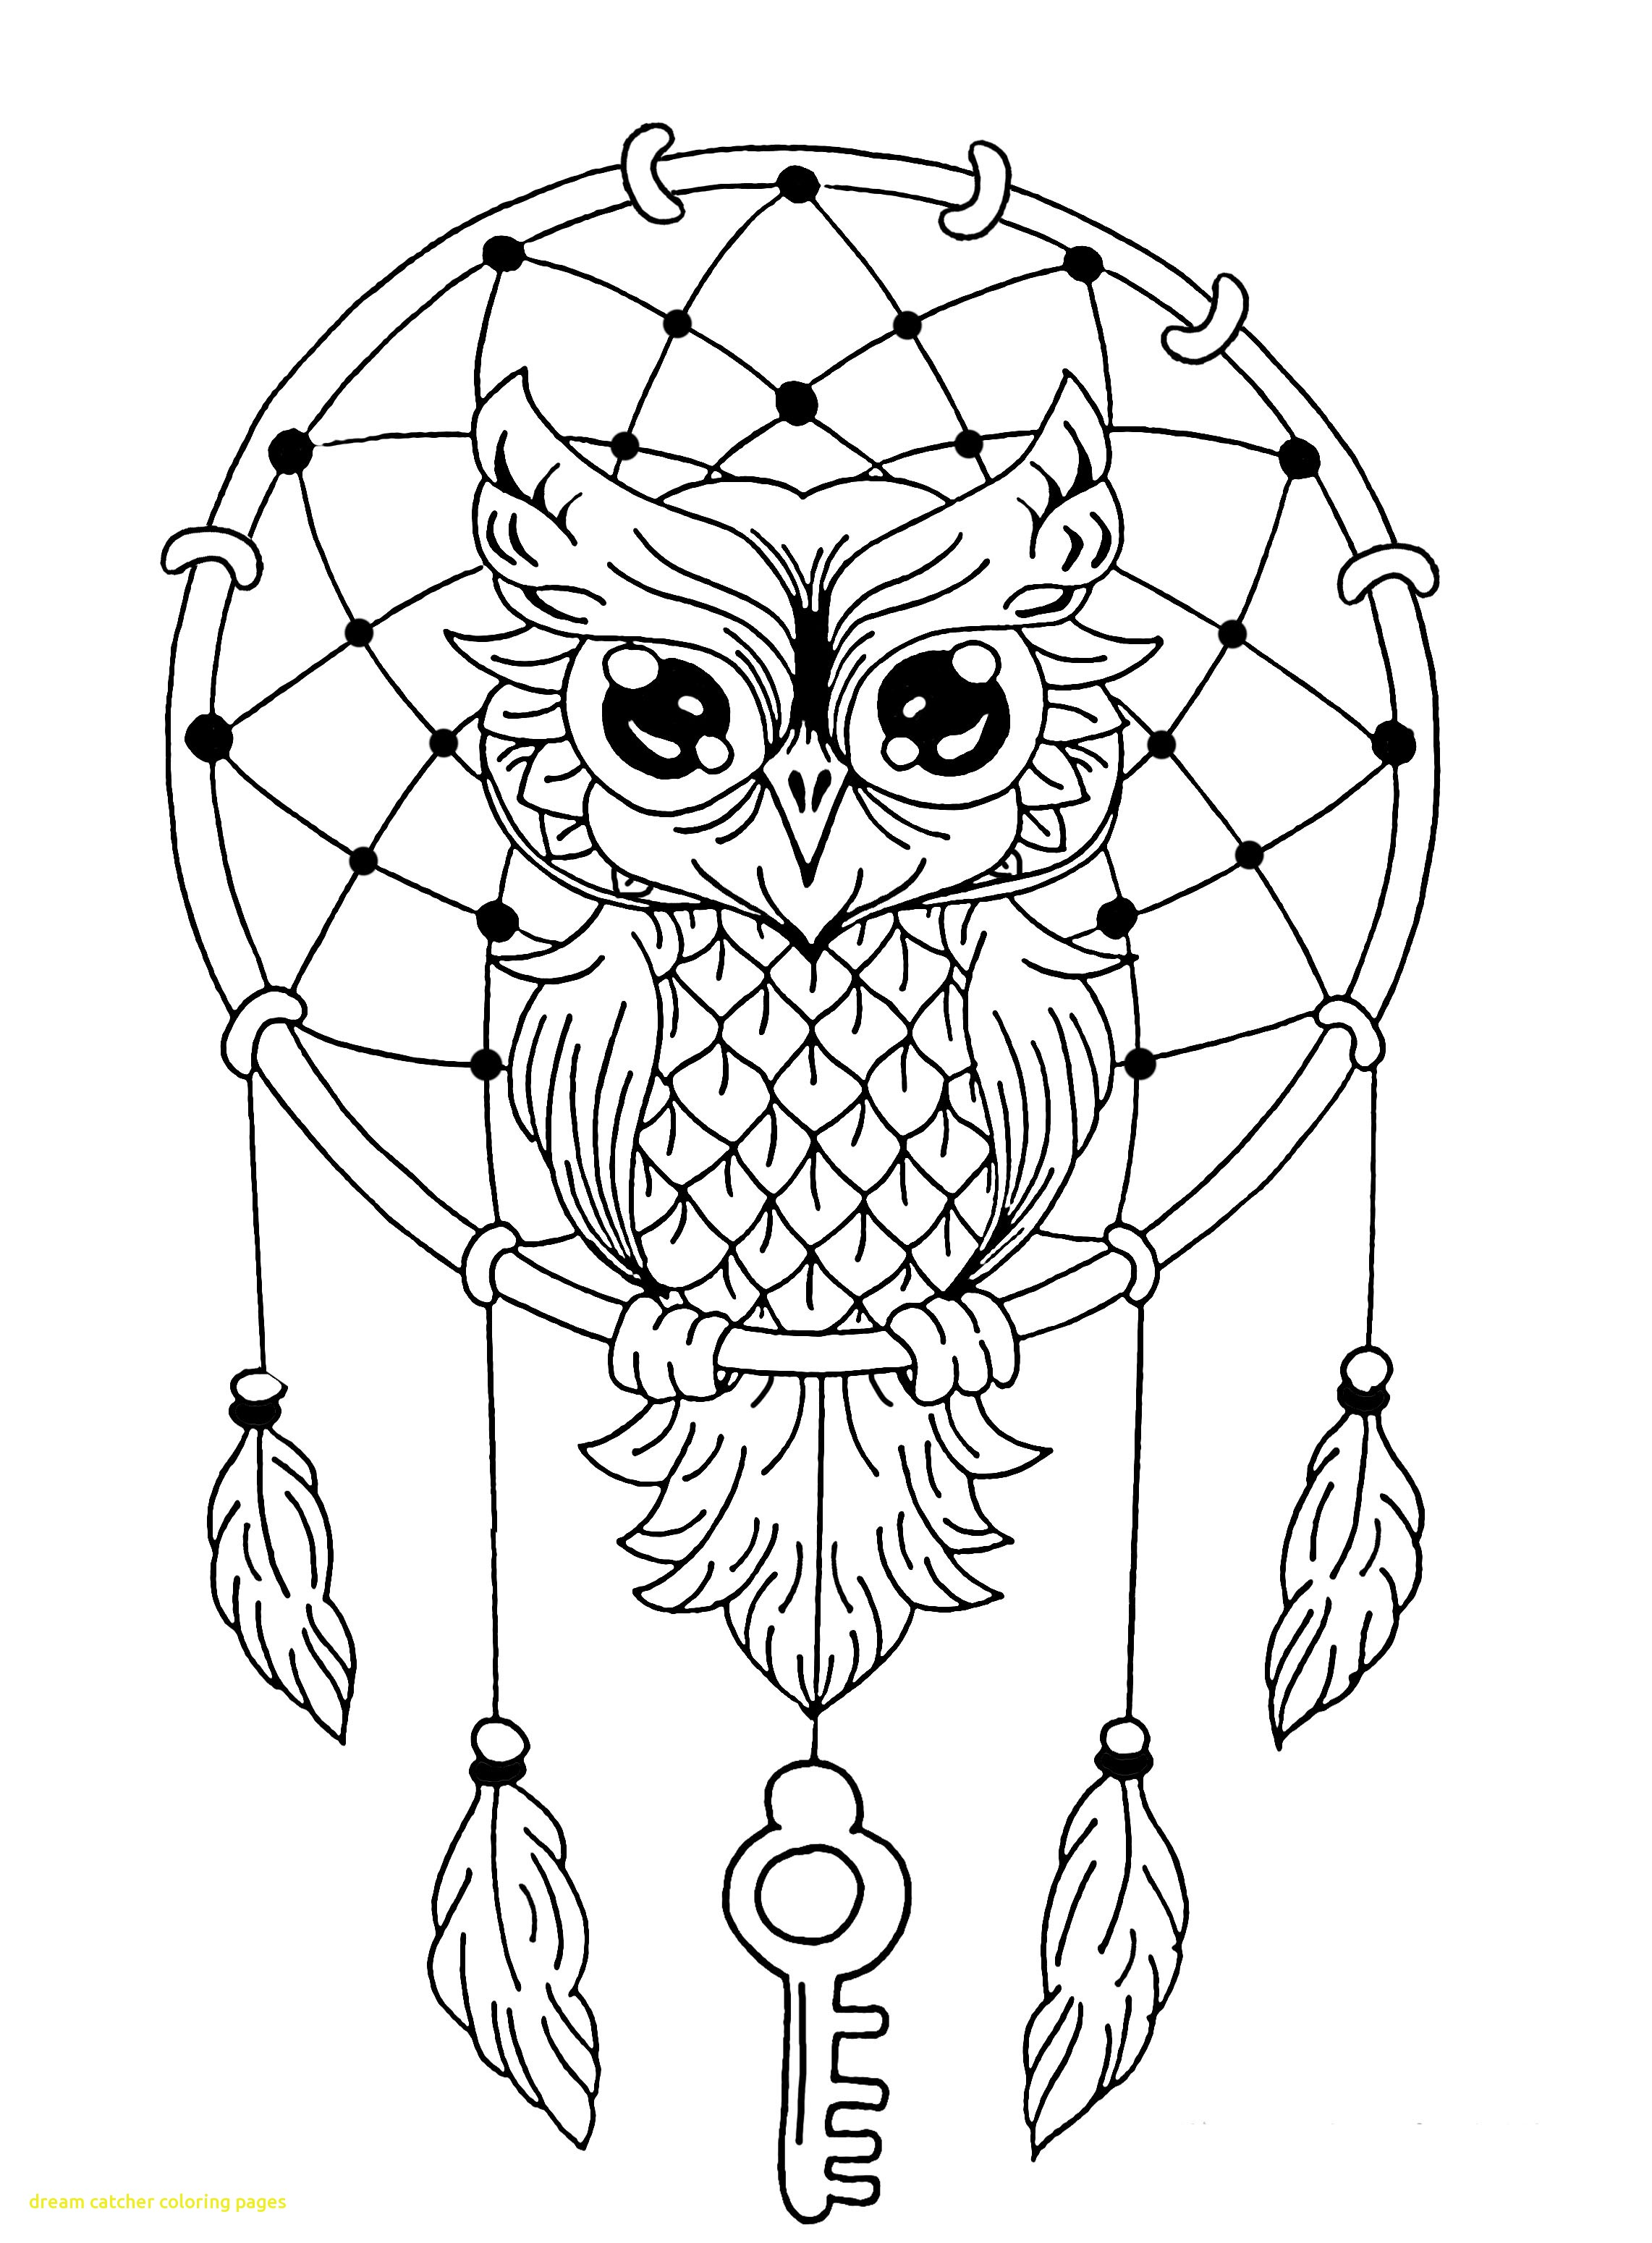 2283x3099 Dream Catcher Coloring Pages With Owl Dreamcatcher Animals